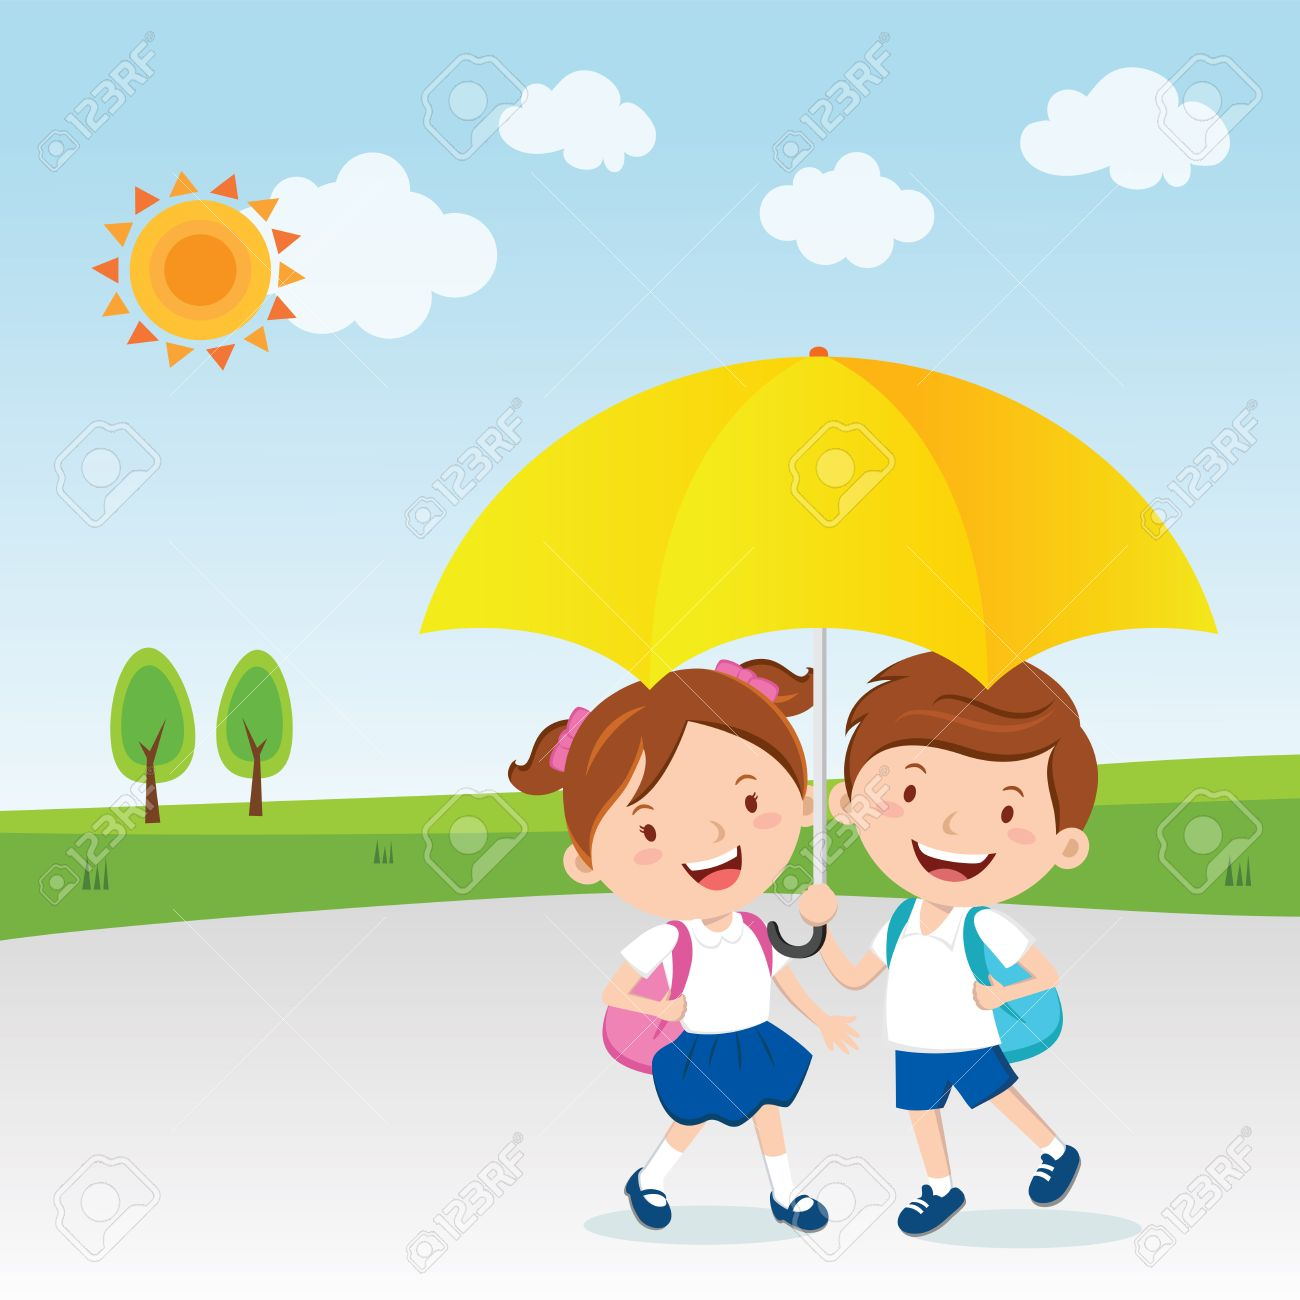 children under the umbrella sunny day royalty free cliparts rh 123rf com sunny day clipart black and white sunny day clip art free